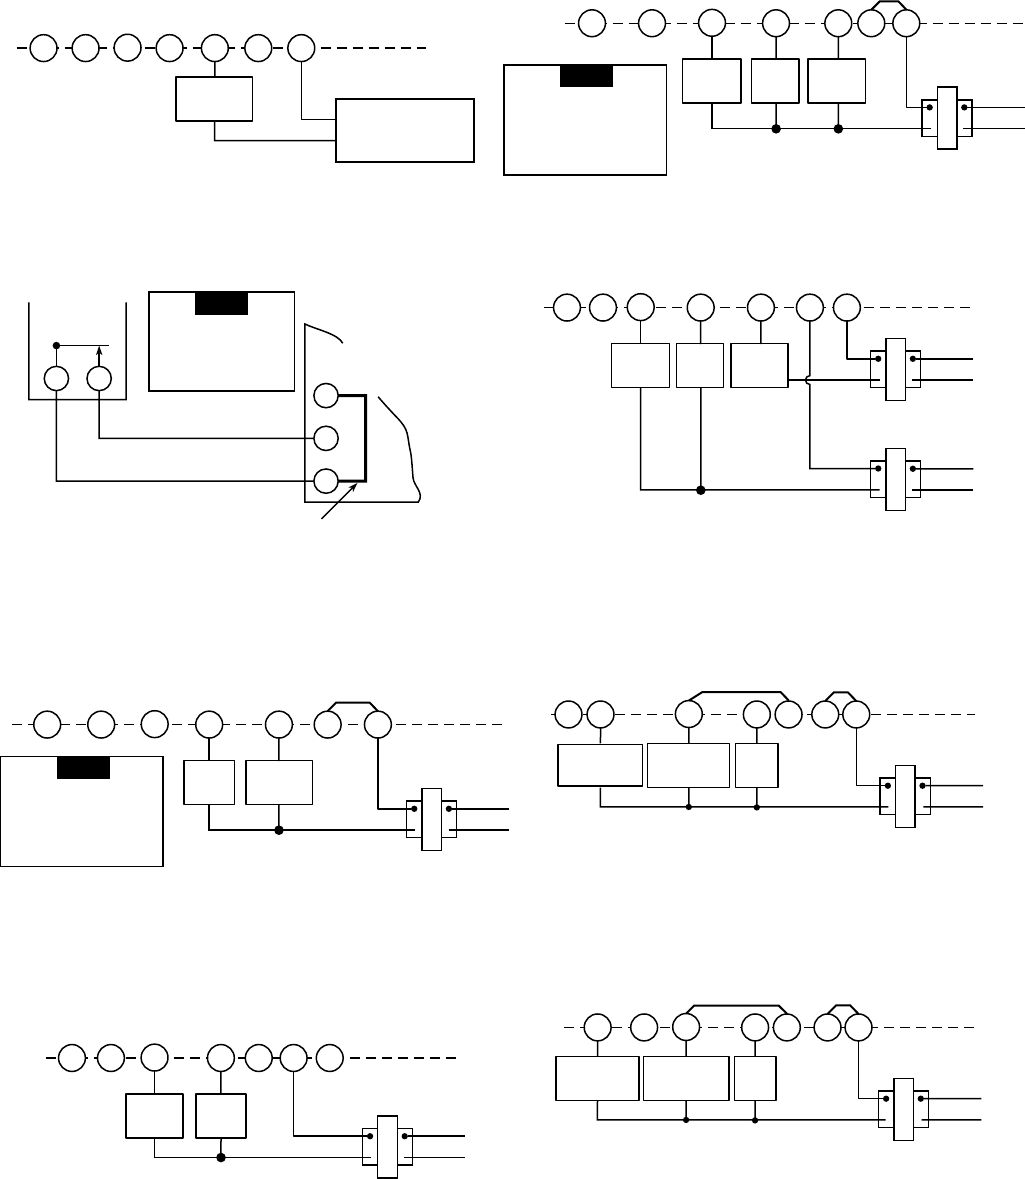 hight resolution of in addition white rodgers zone valve wiring diagram also white rodgers